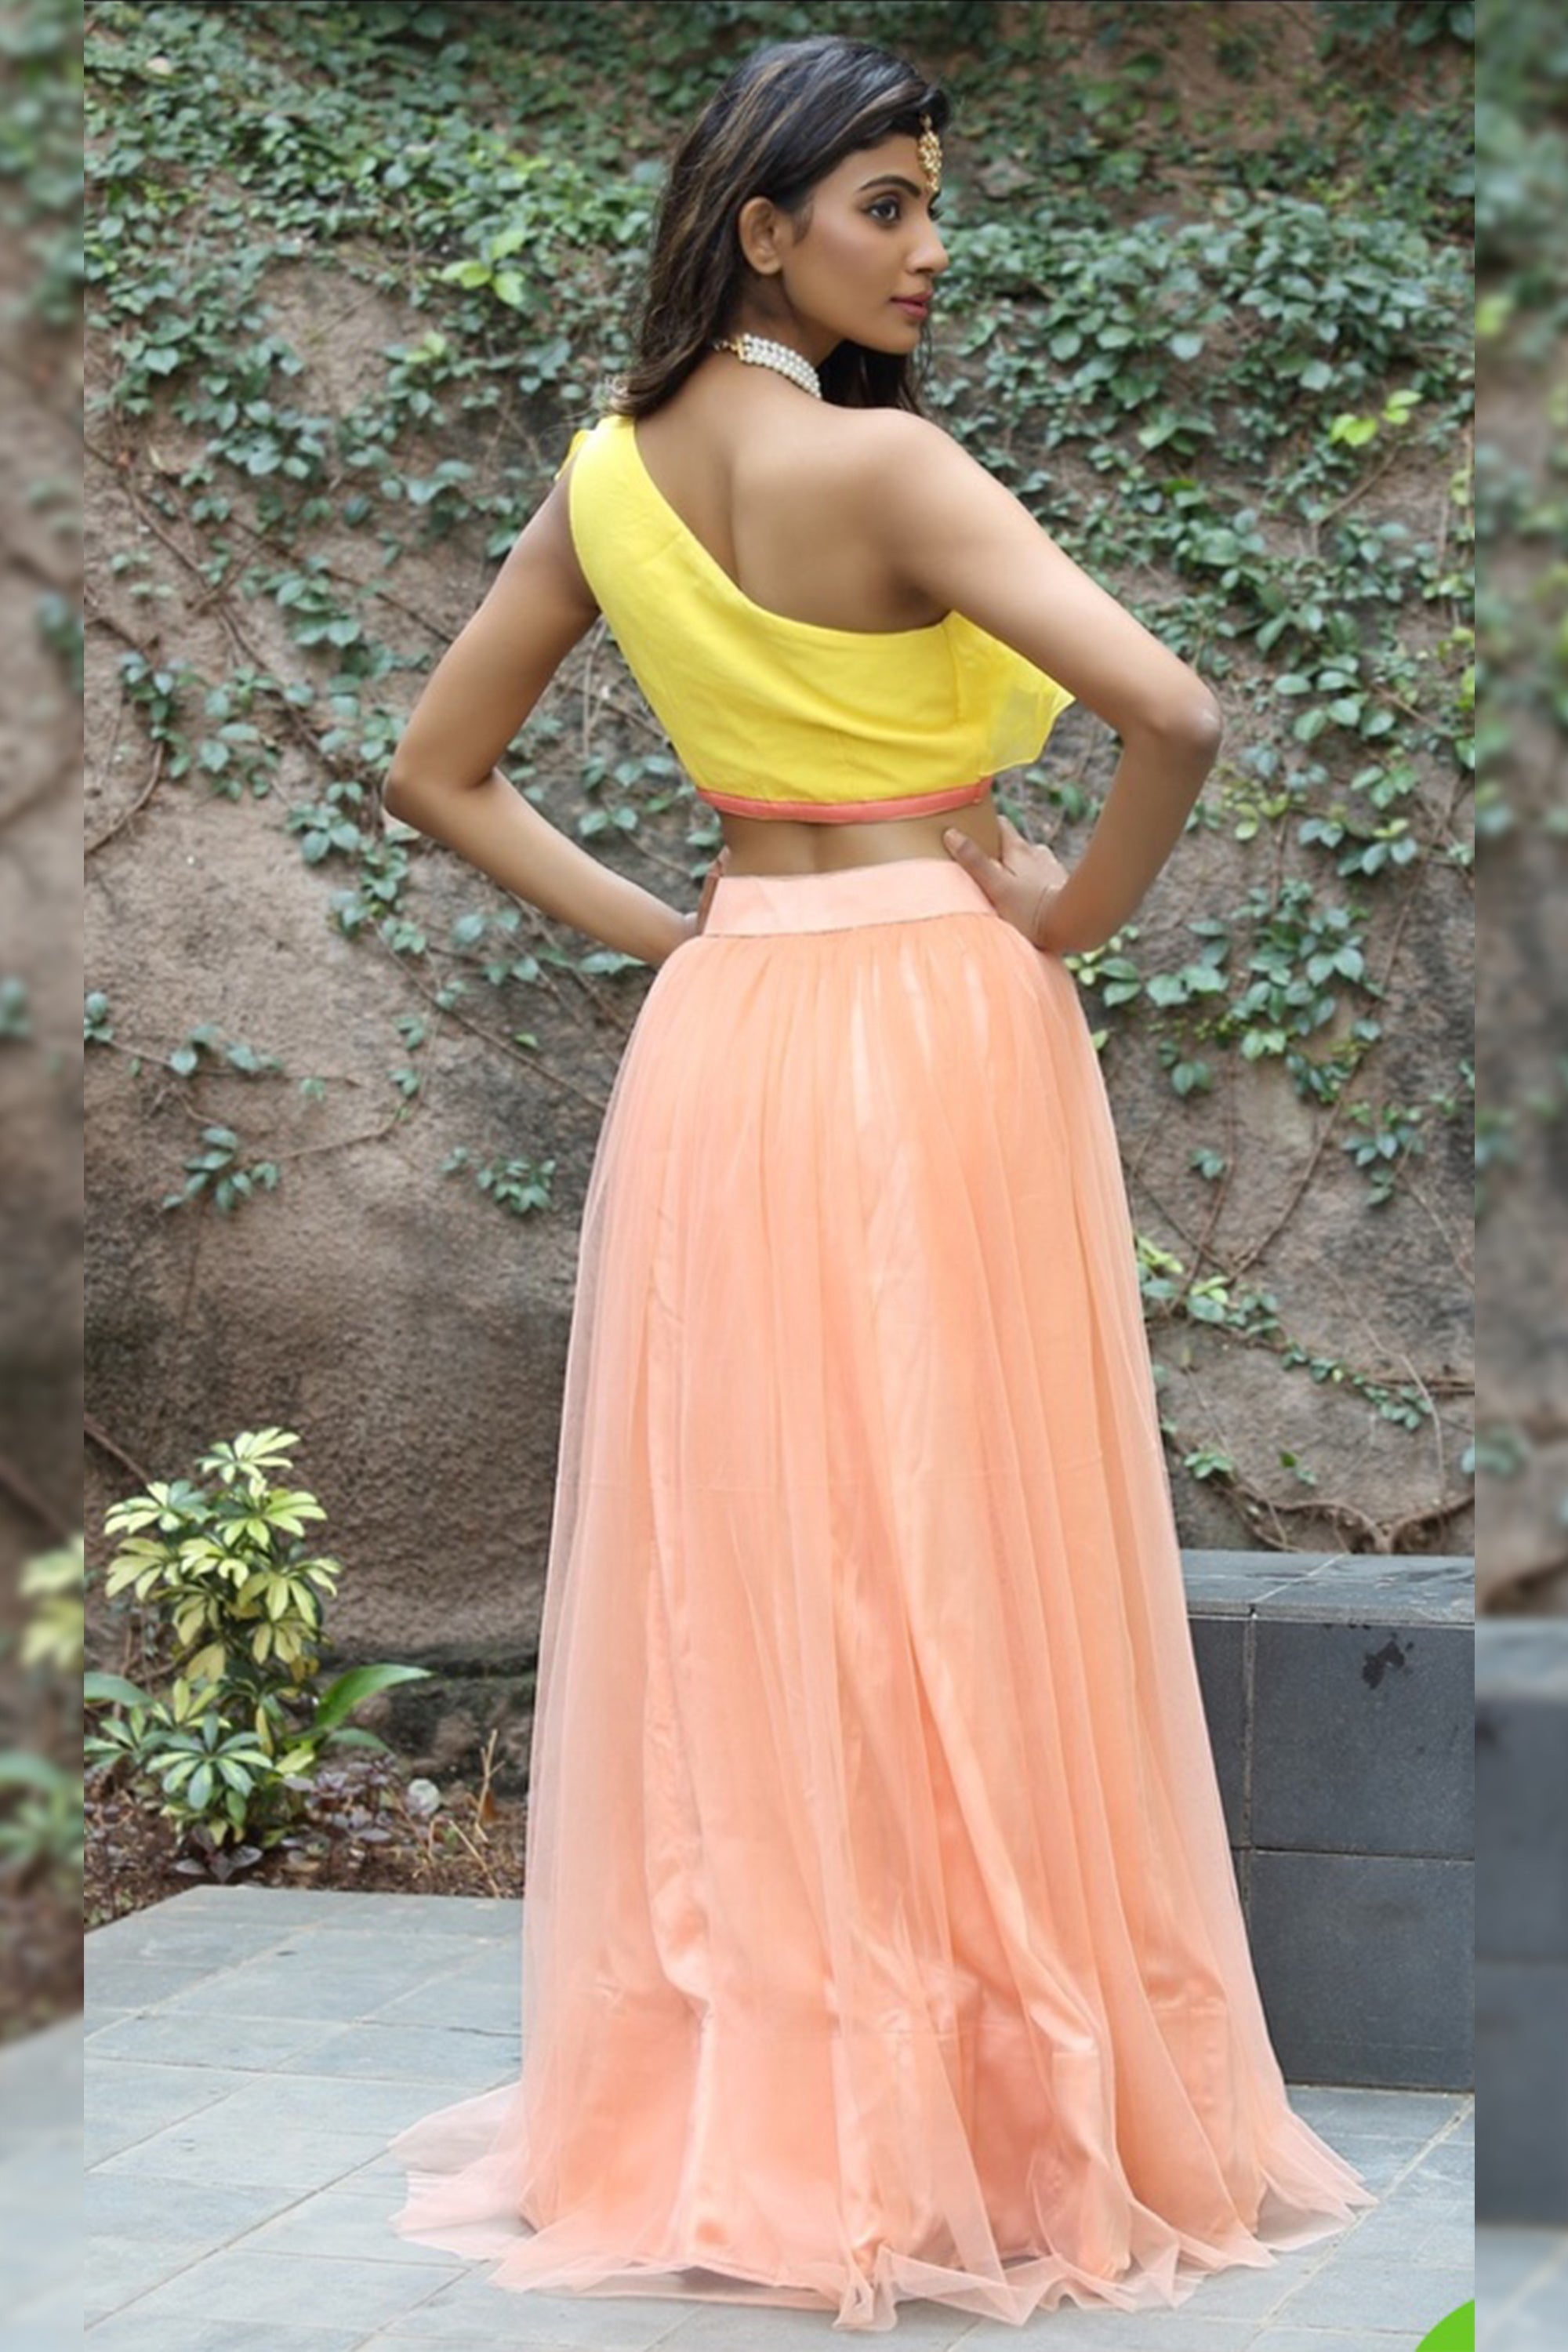 Sunflower Yellow One-Shoulder Top With Peach Parfait Tulle Skirt Back